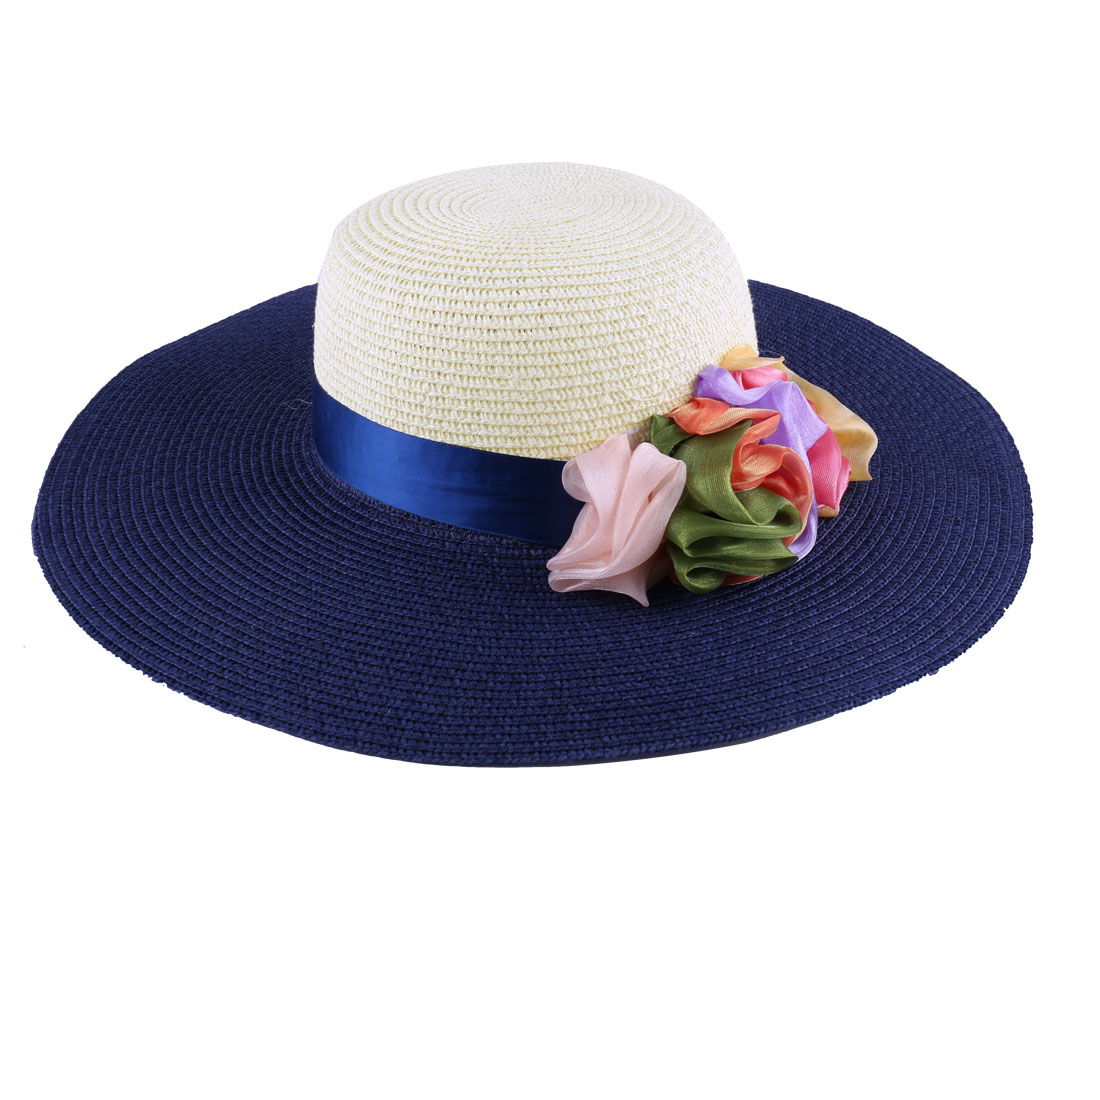 Stylish Ladies Colorful Manmade Flowers Decor Dark Blue Off-White Sun Straw Hat